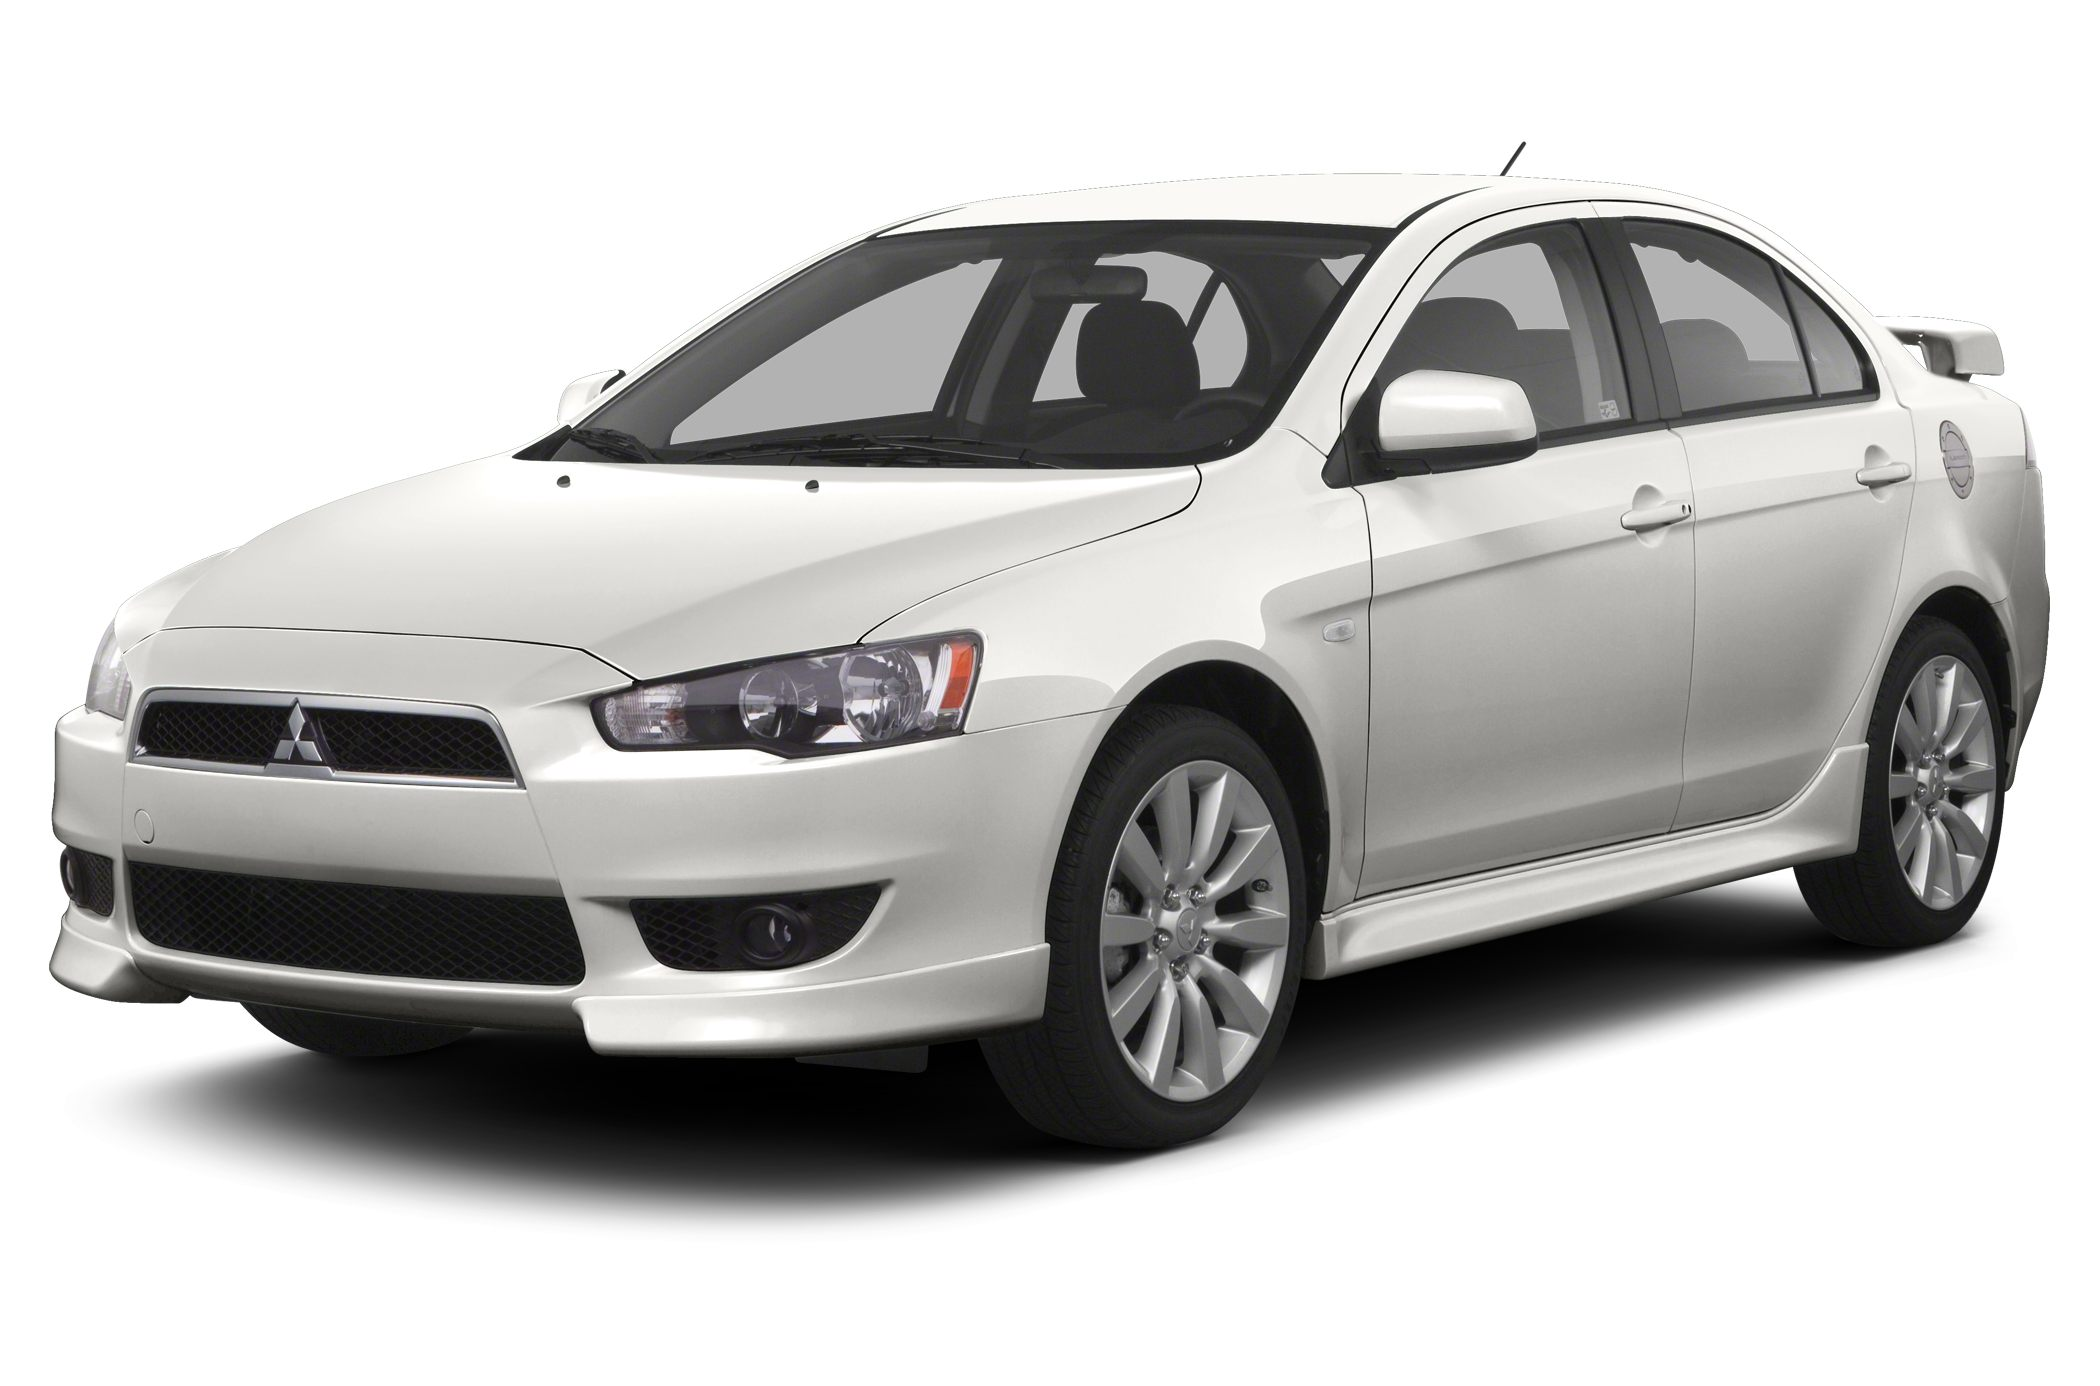 2014 Mitsubishi Lancer SE Sedan for sale in Johnstown for $0 with 17,889 miles